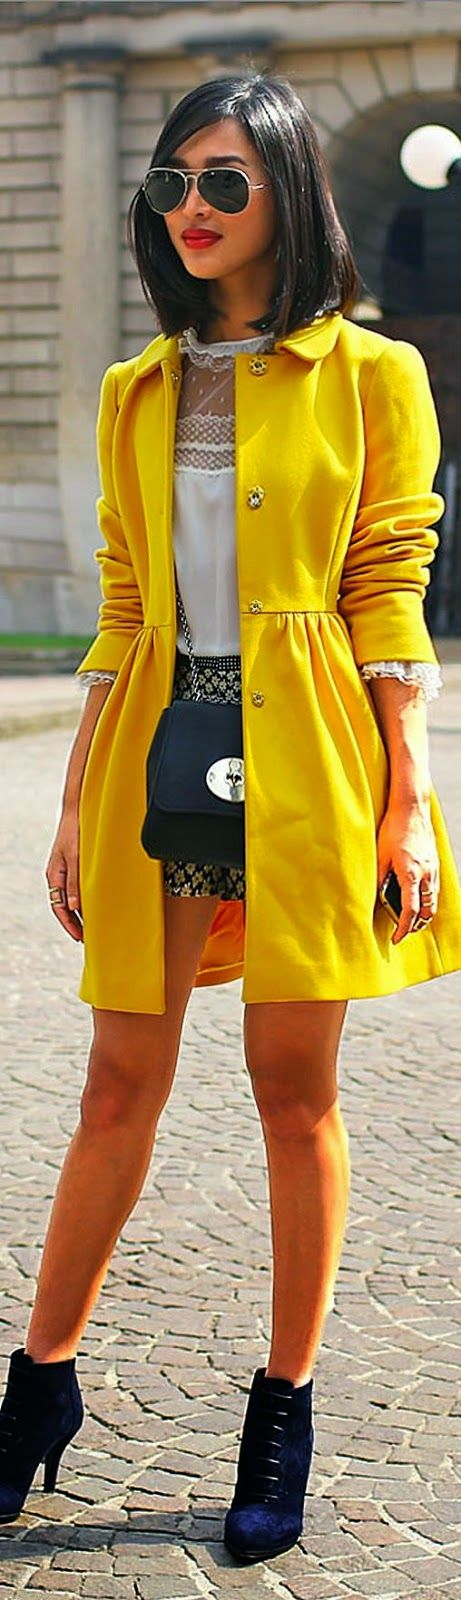 Yellow the Pop Color Coat with Lace Top | Chic Str...